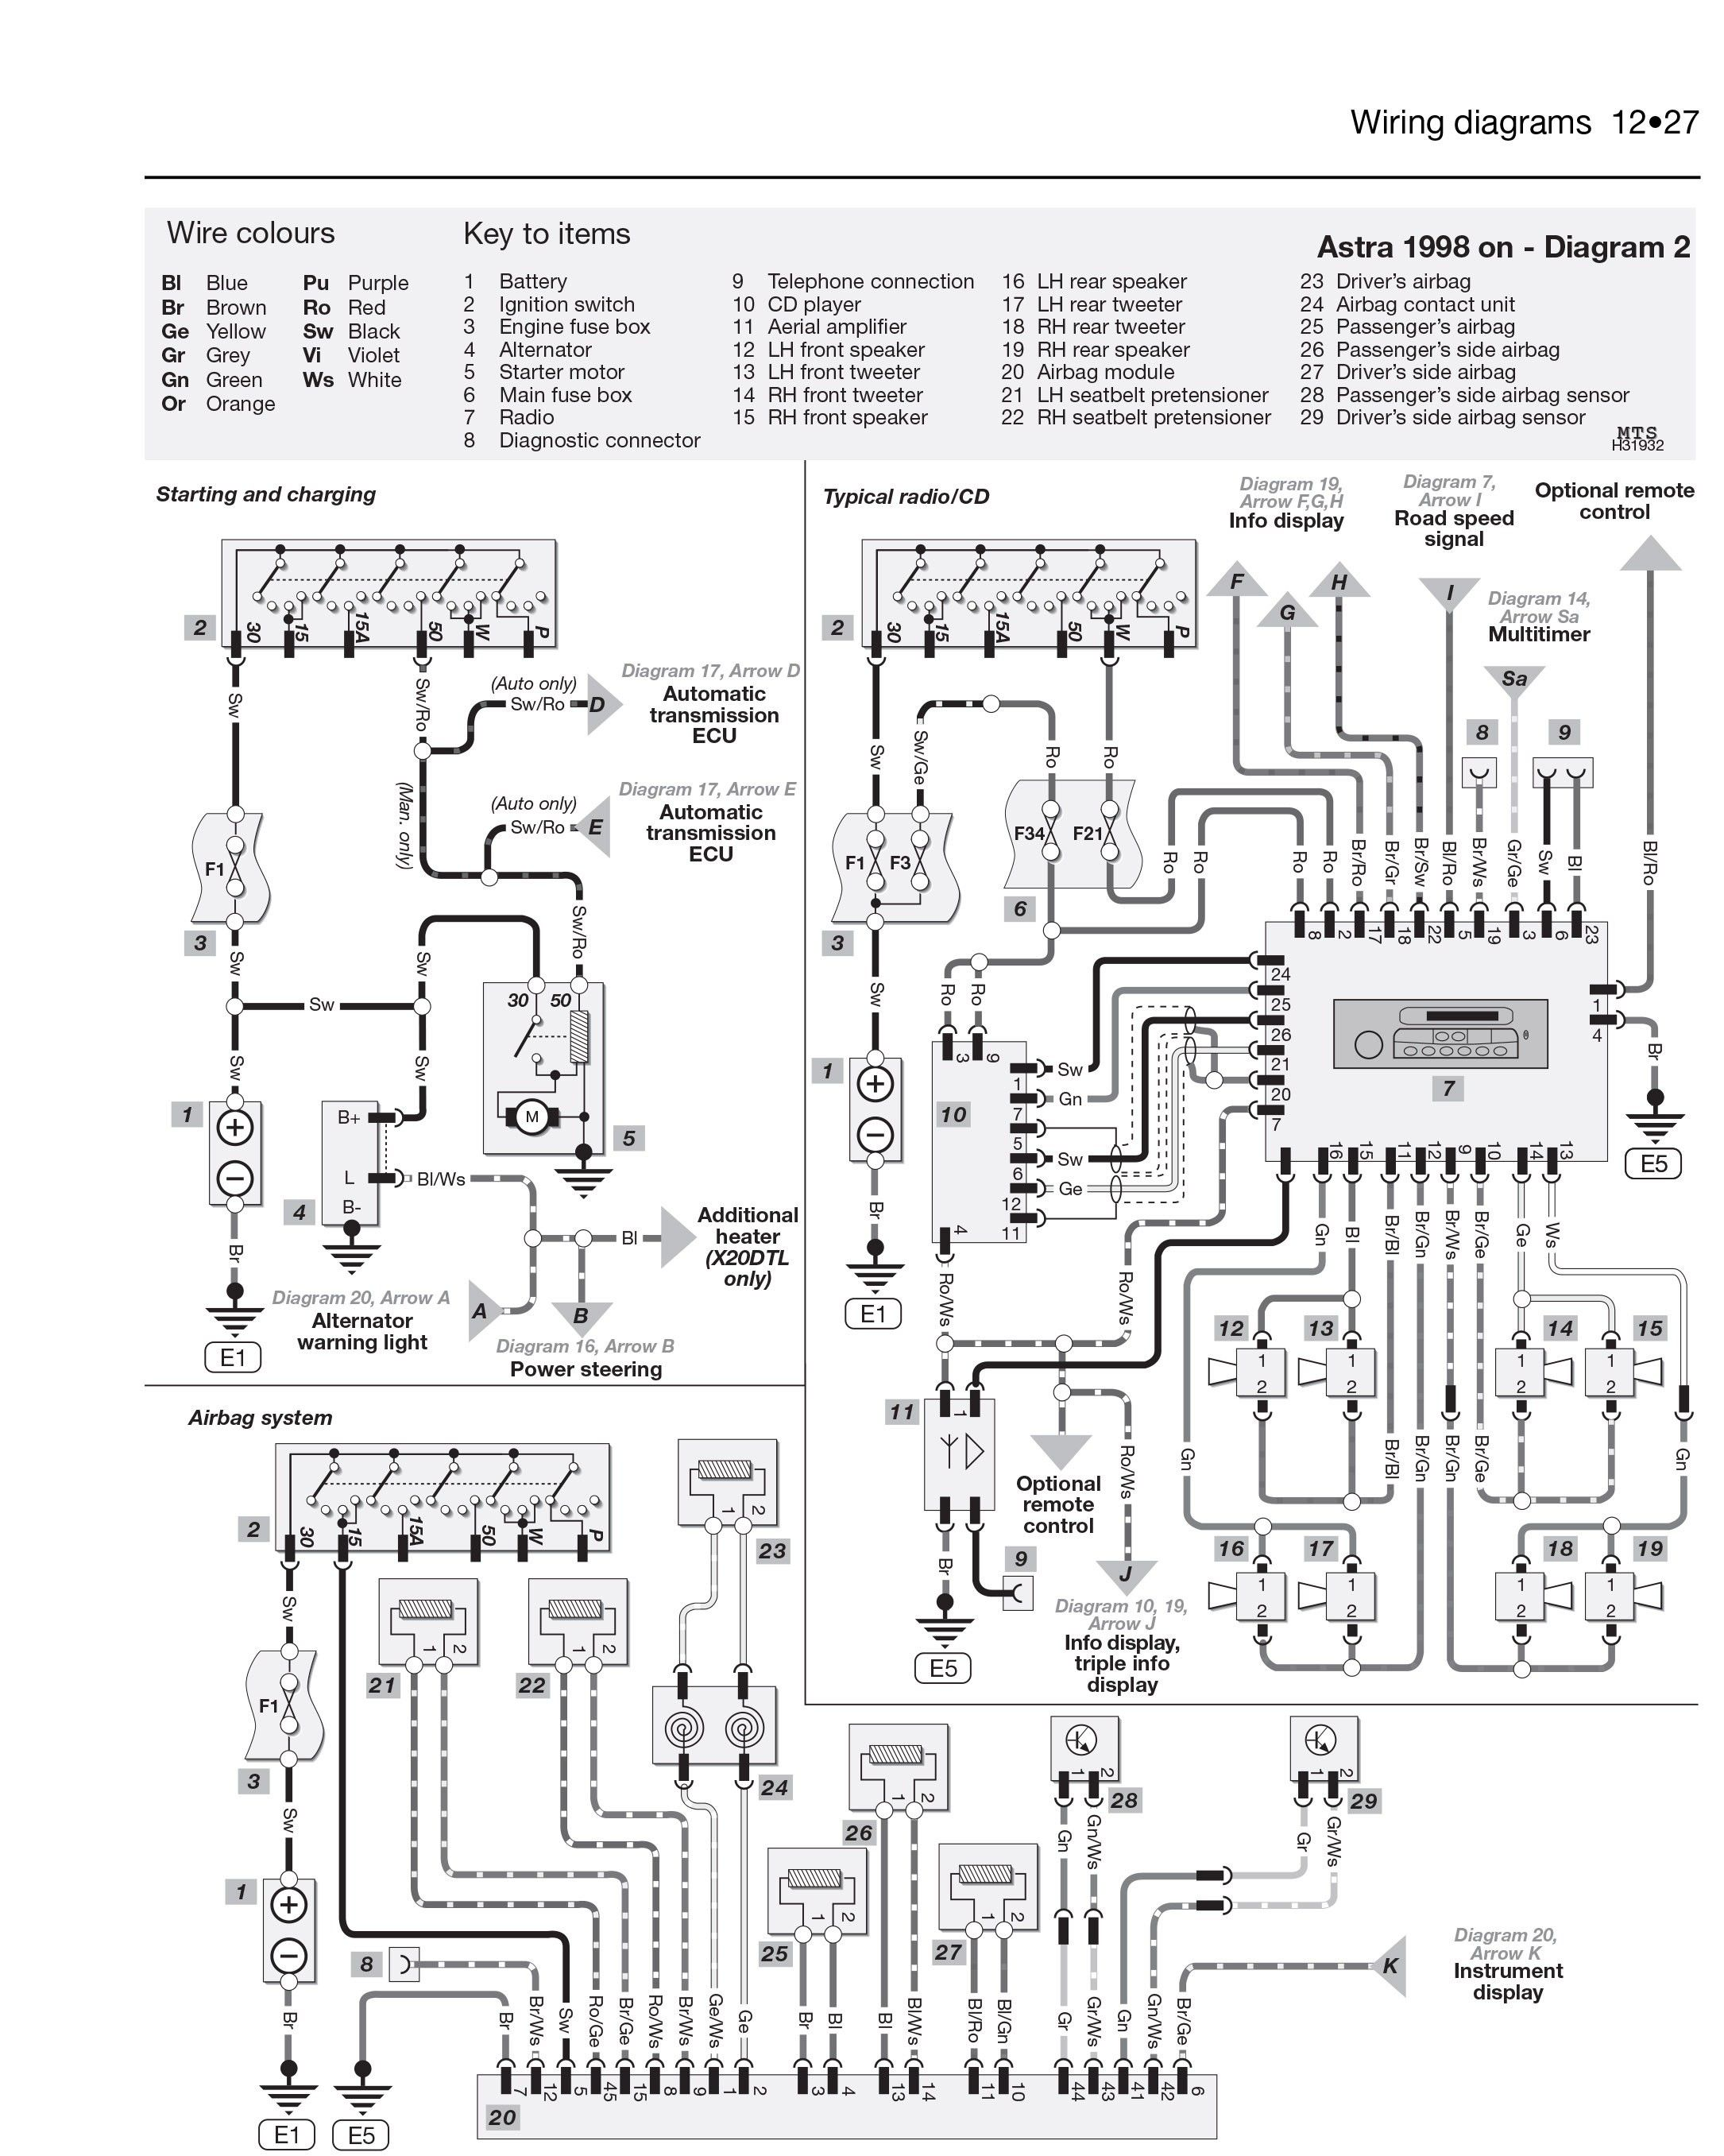 Wiring Diagram Zafira A Pdf In 2021 Opel Corsa Home Security Systems Vauxhall